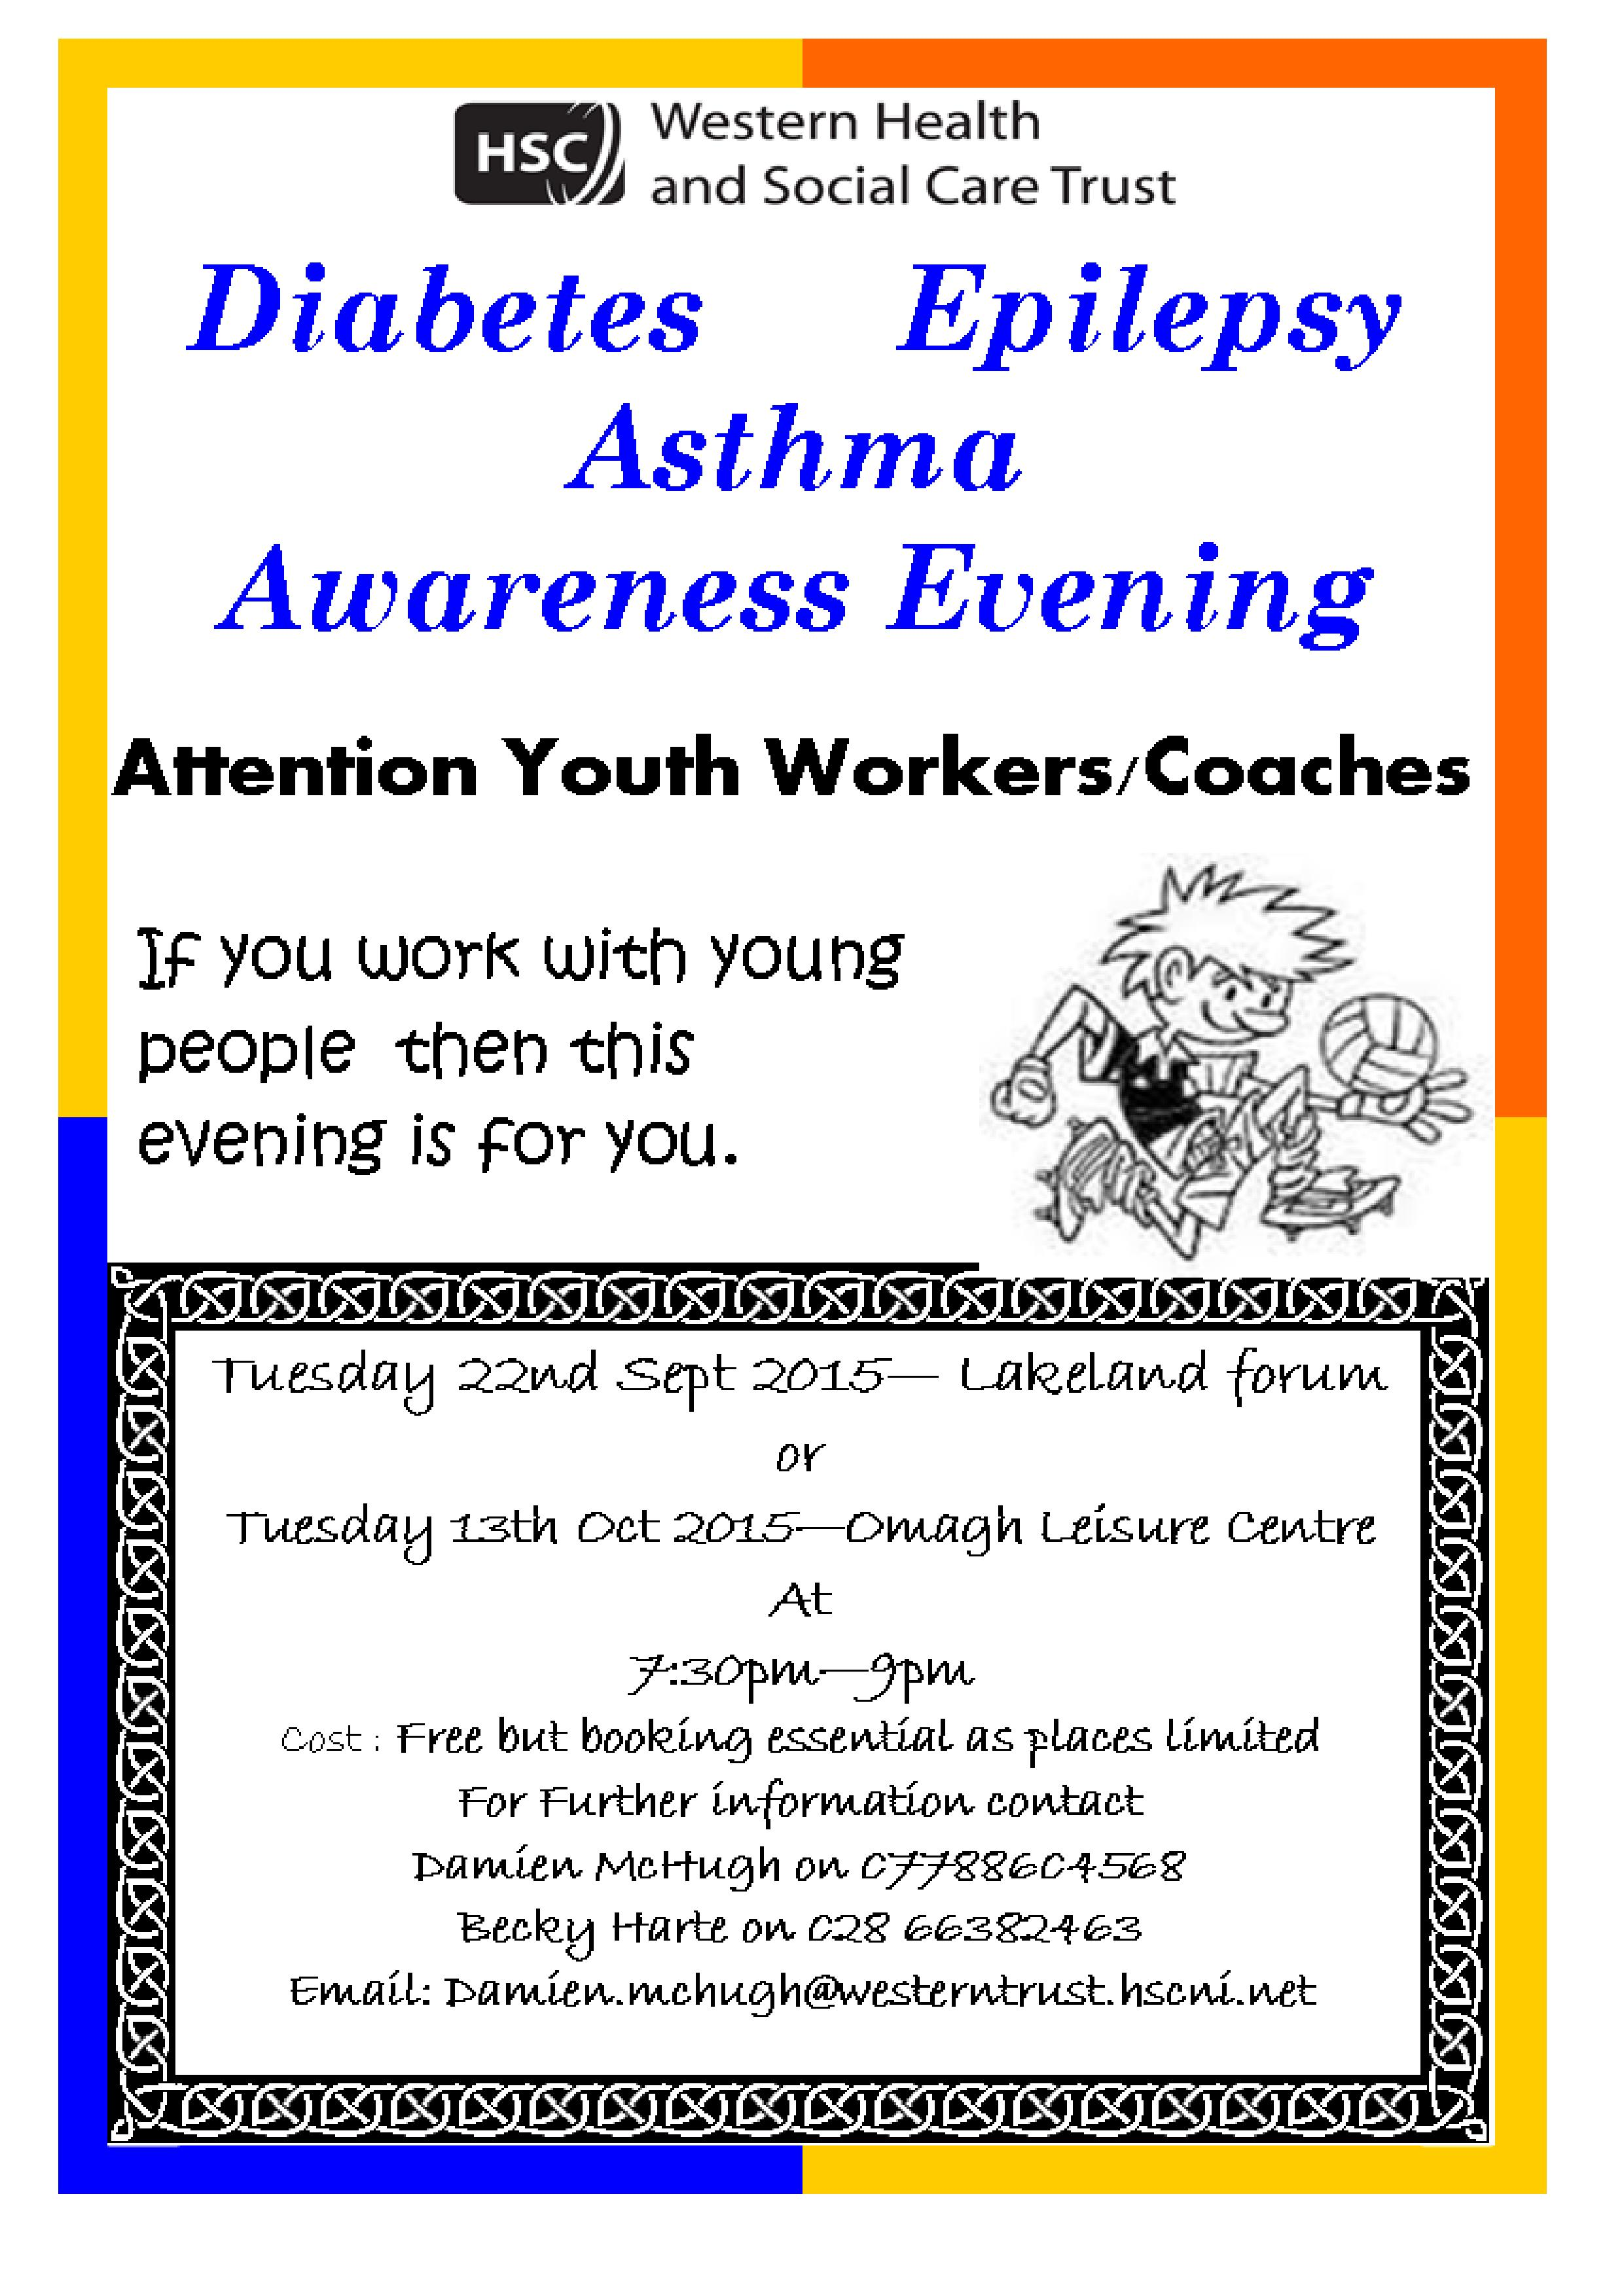 Asthma Epilepsy and Diabetes Awareness evening for coaches